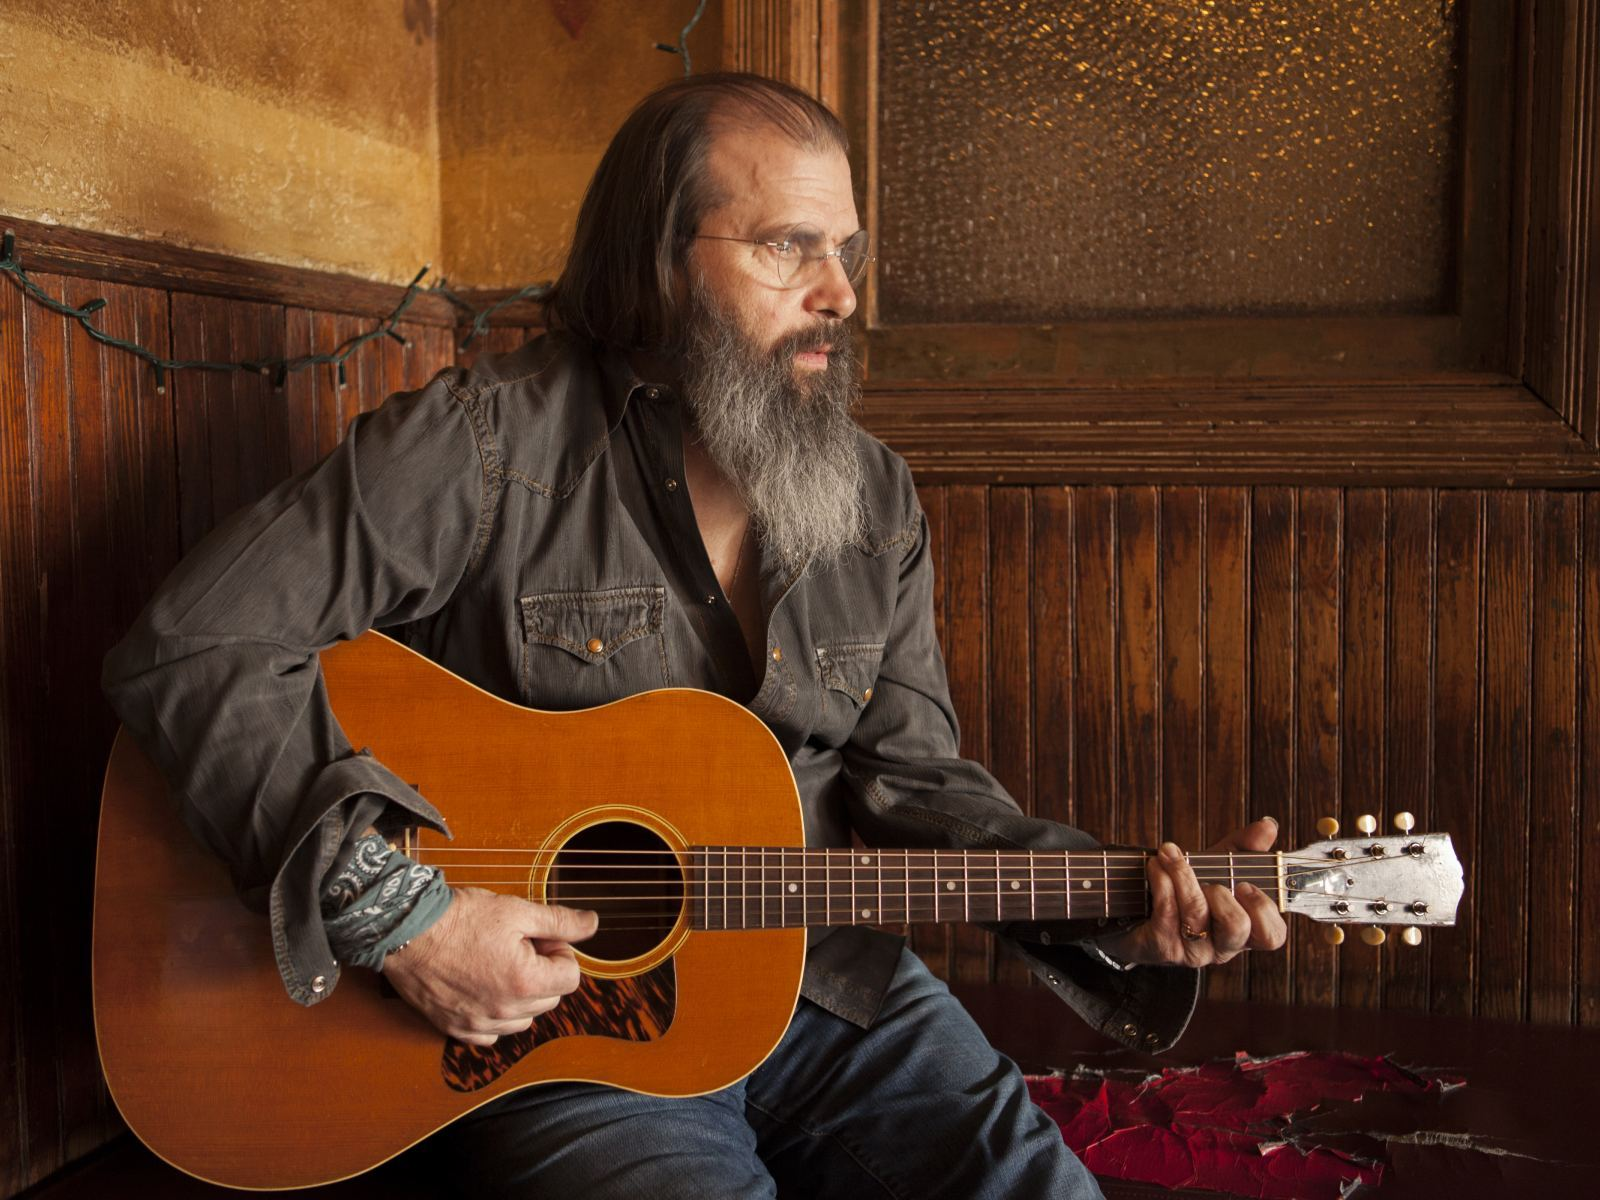 Main image for event titled Steve Earle & The Dukes (SOLD OUT)